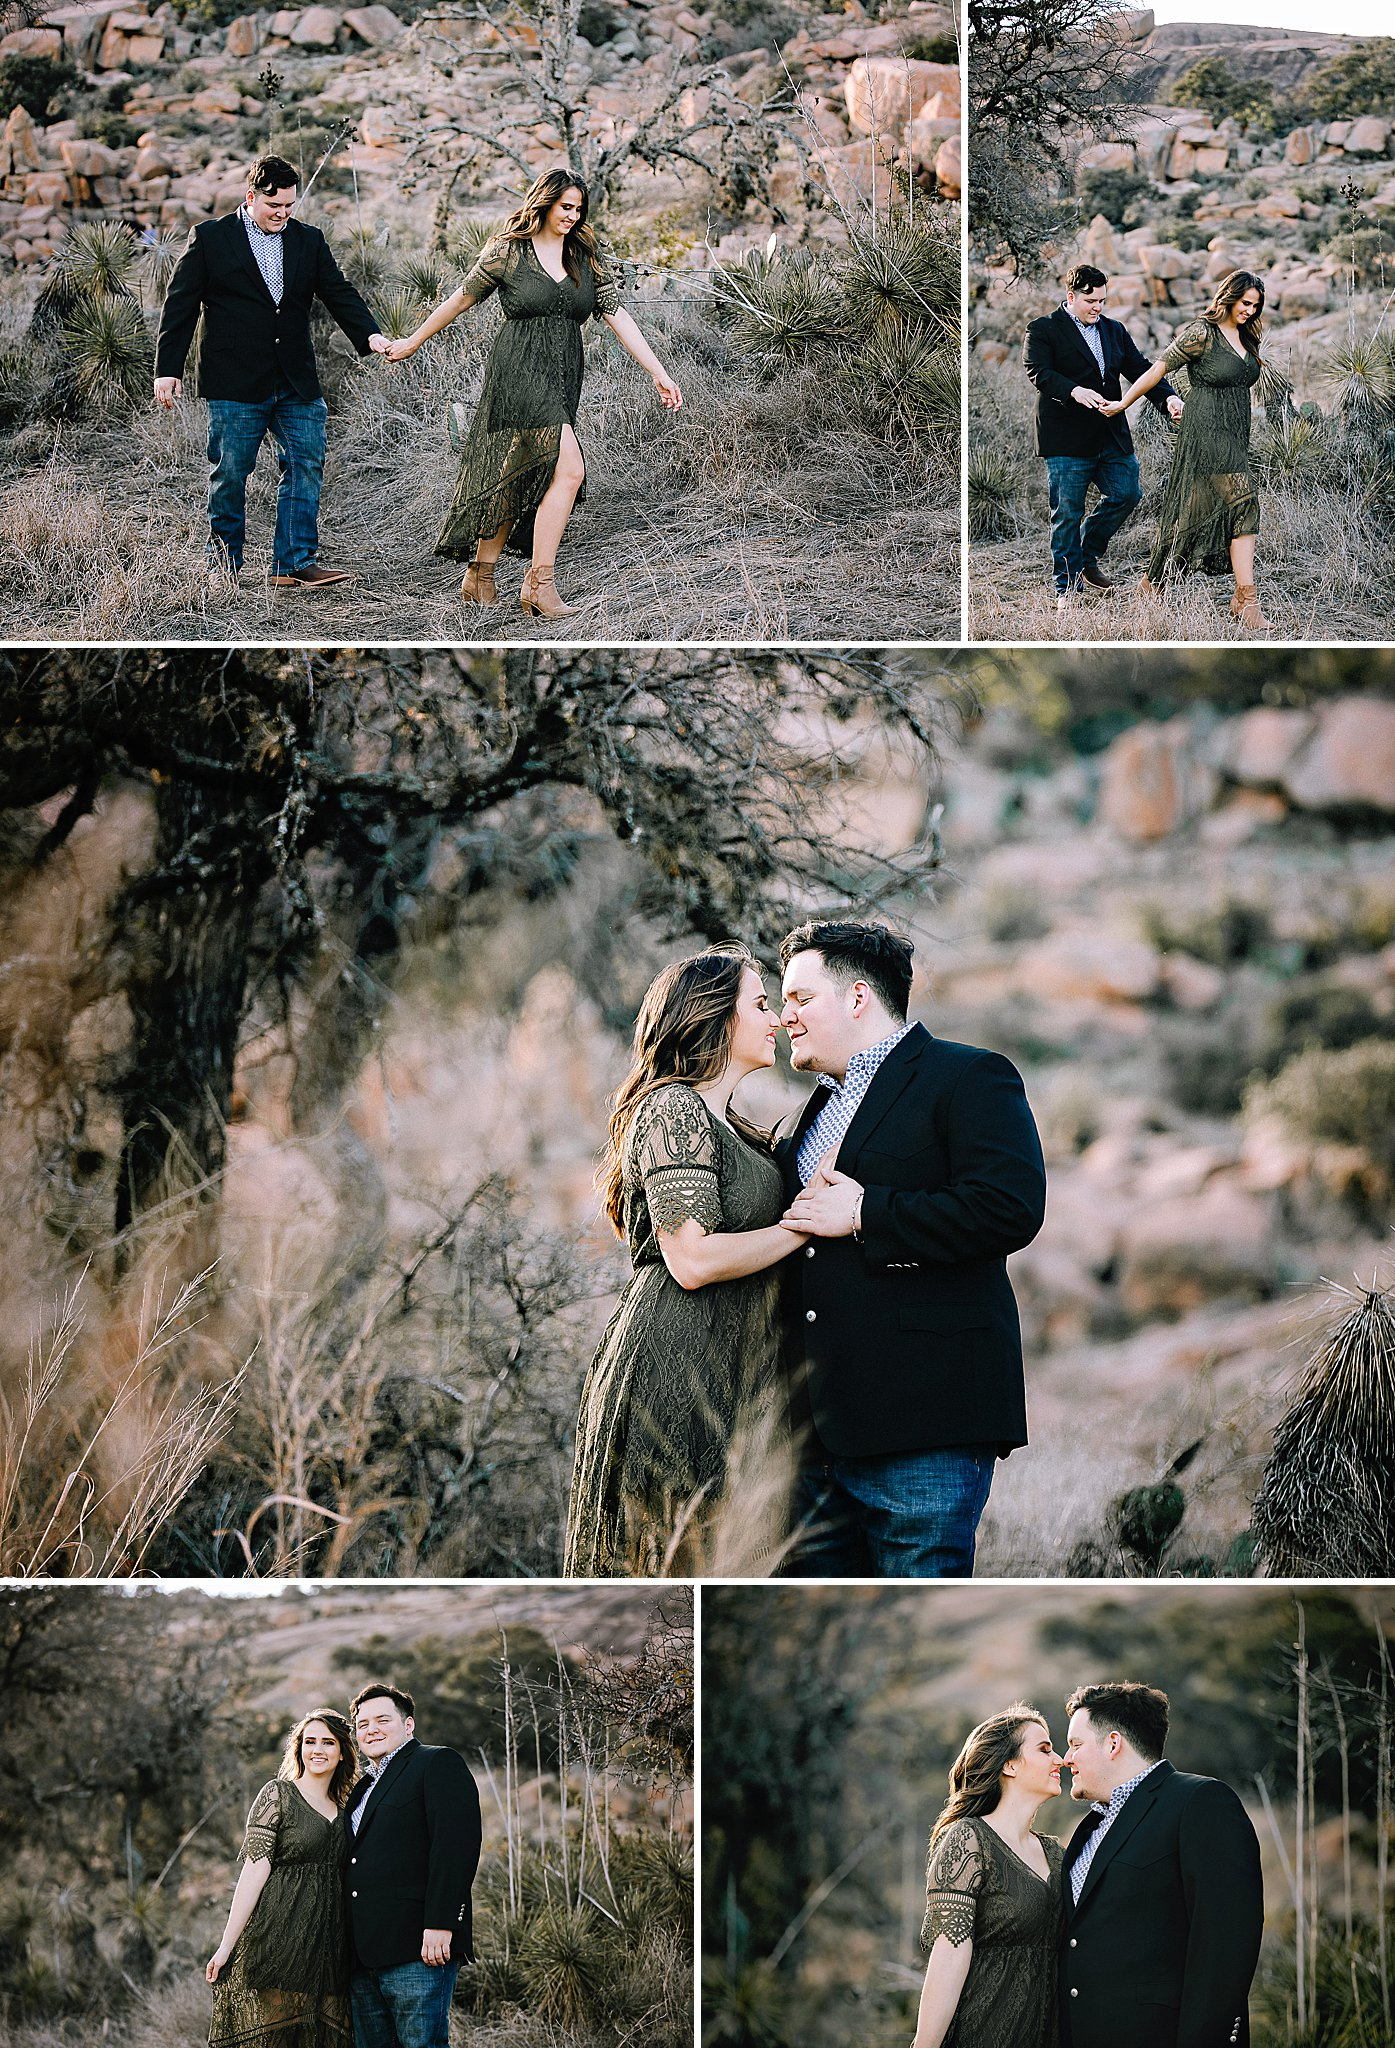 Carly-Barton-Photography-Fredericksburg-Texas-Engagement-Session-Enchanted-Rock-Photos_0016.jpg